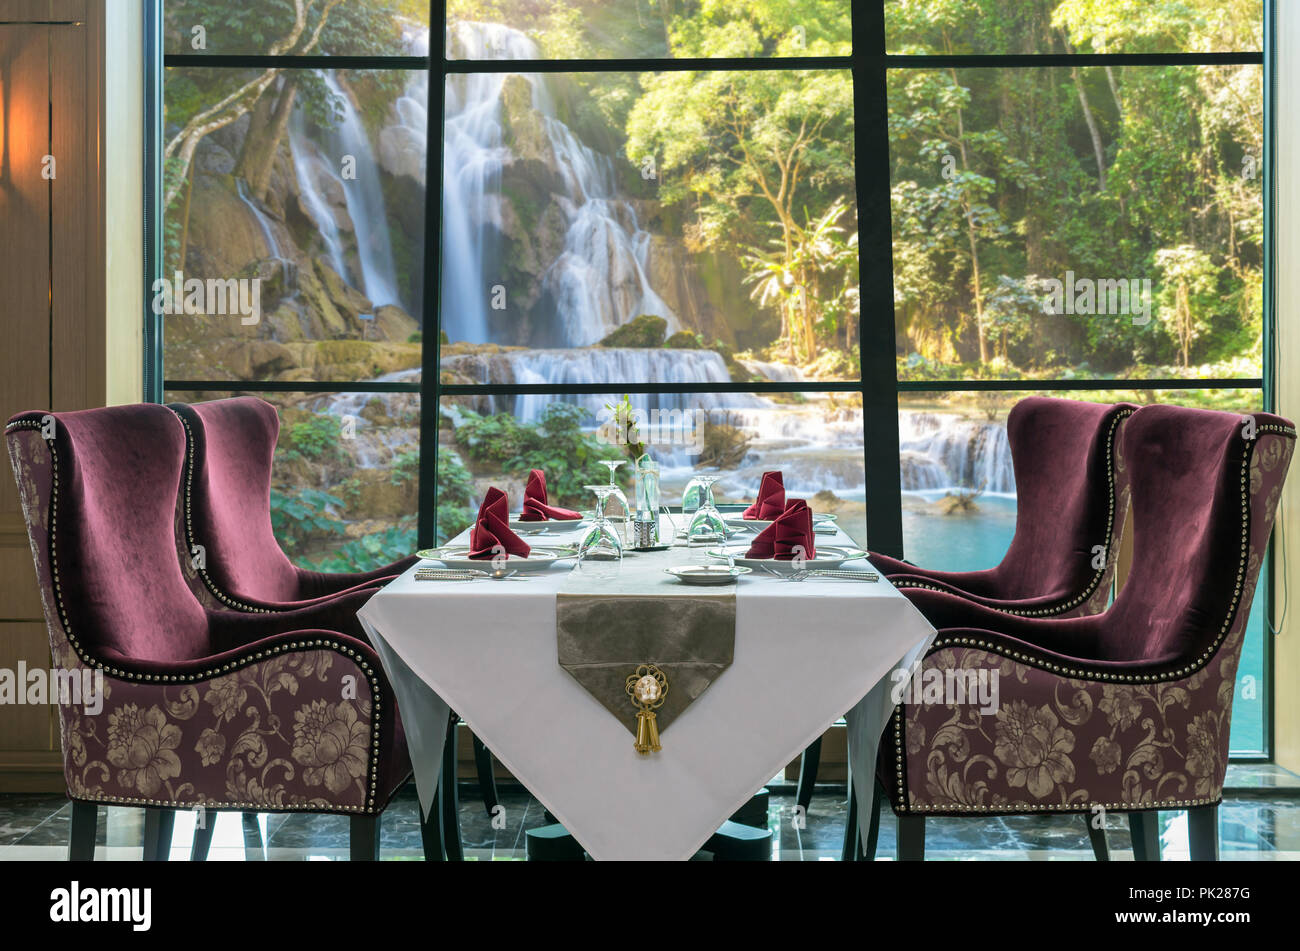 Luxury restaurant set over windows glass of the view of Beautiful waterfall in the forest, dicut each elements Stock Photo